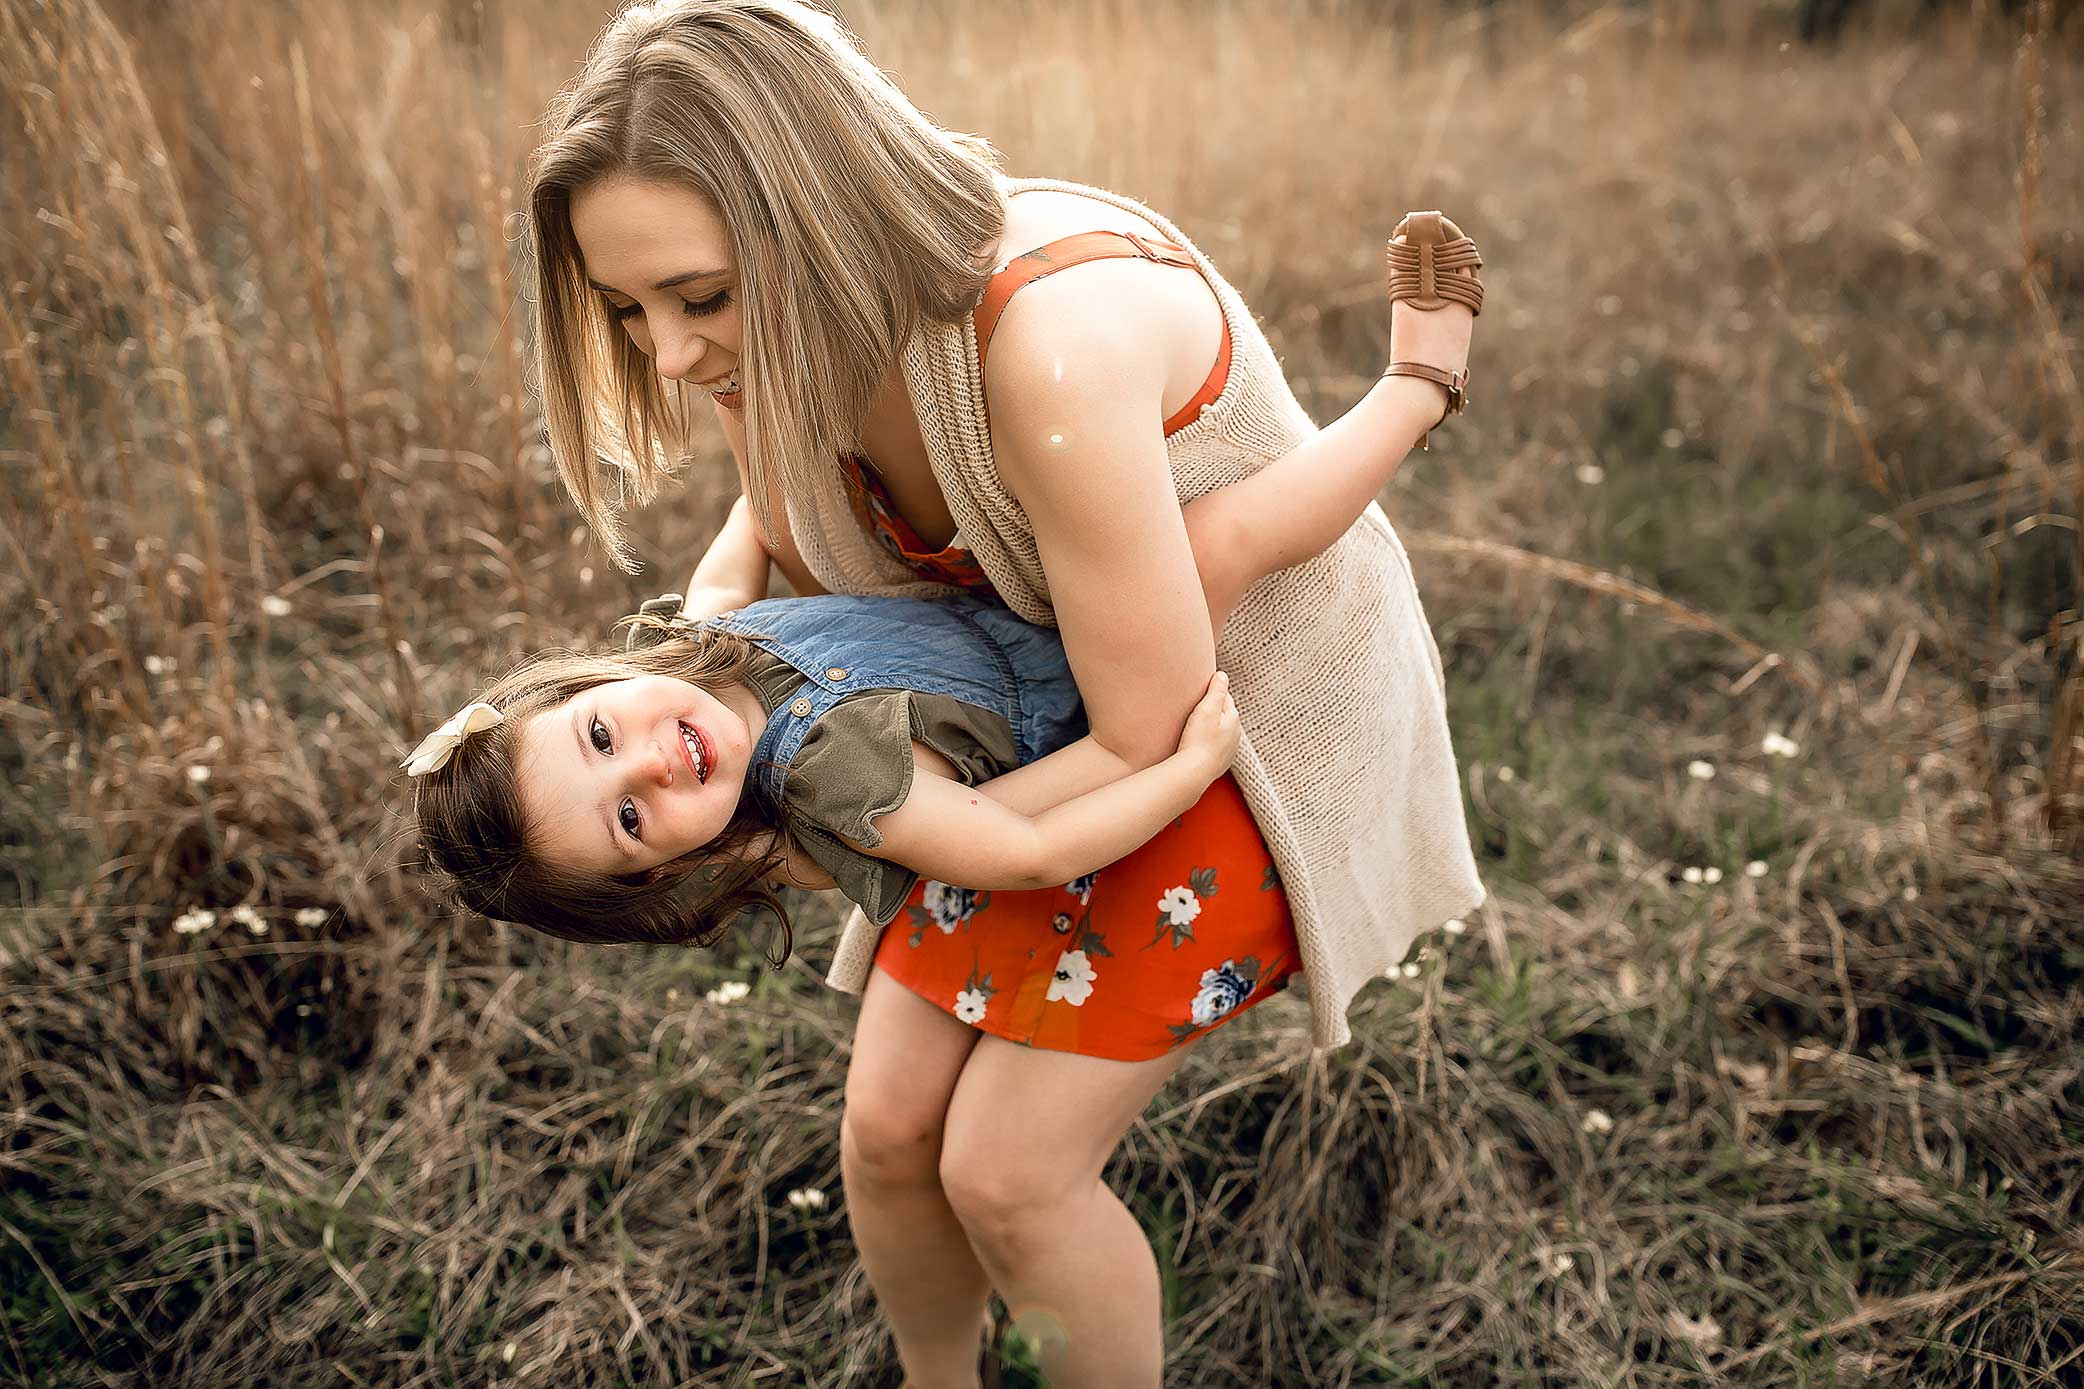 shelby-schiller-photography-sunset-family-pictures-spring-2019-2.jpg